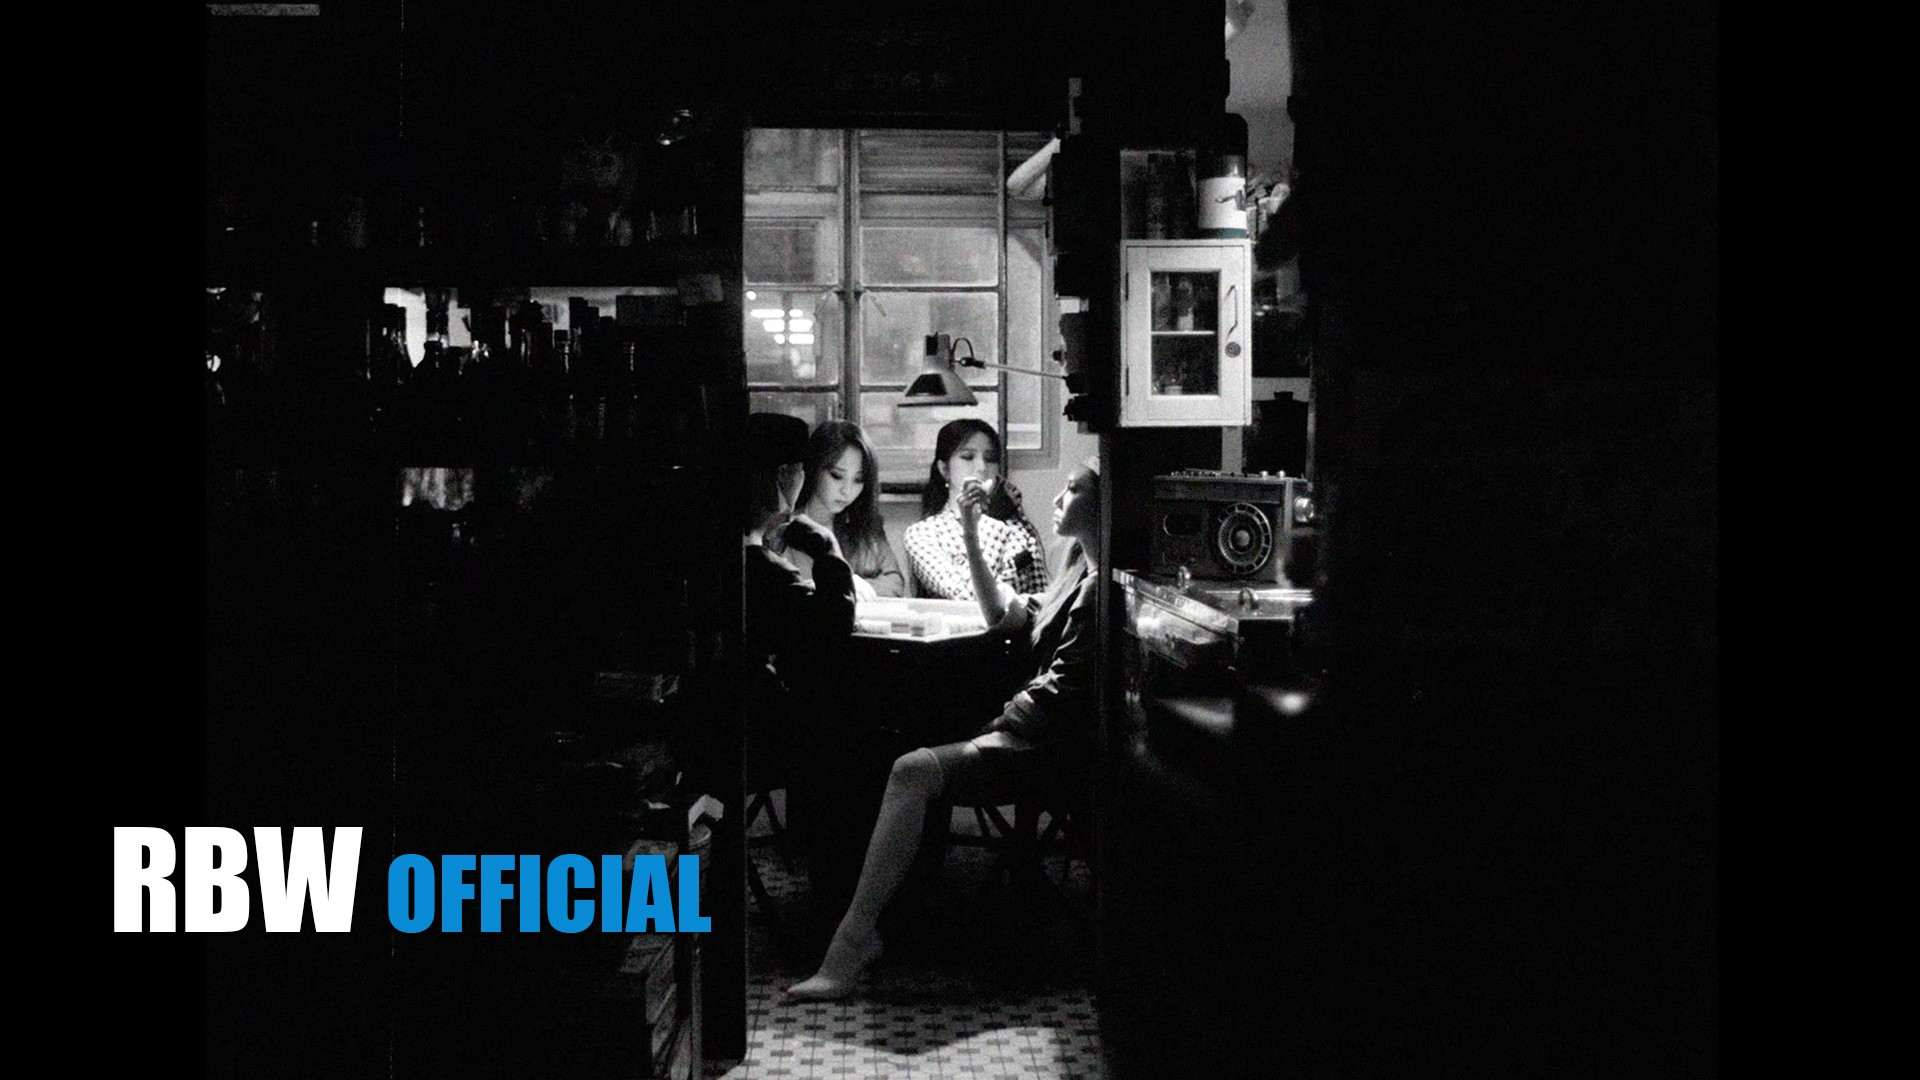 [TEASER] MAMAMOO BLUE;S CONCEPT VIDEO